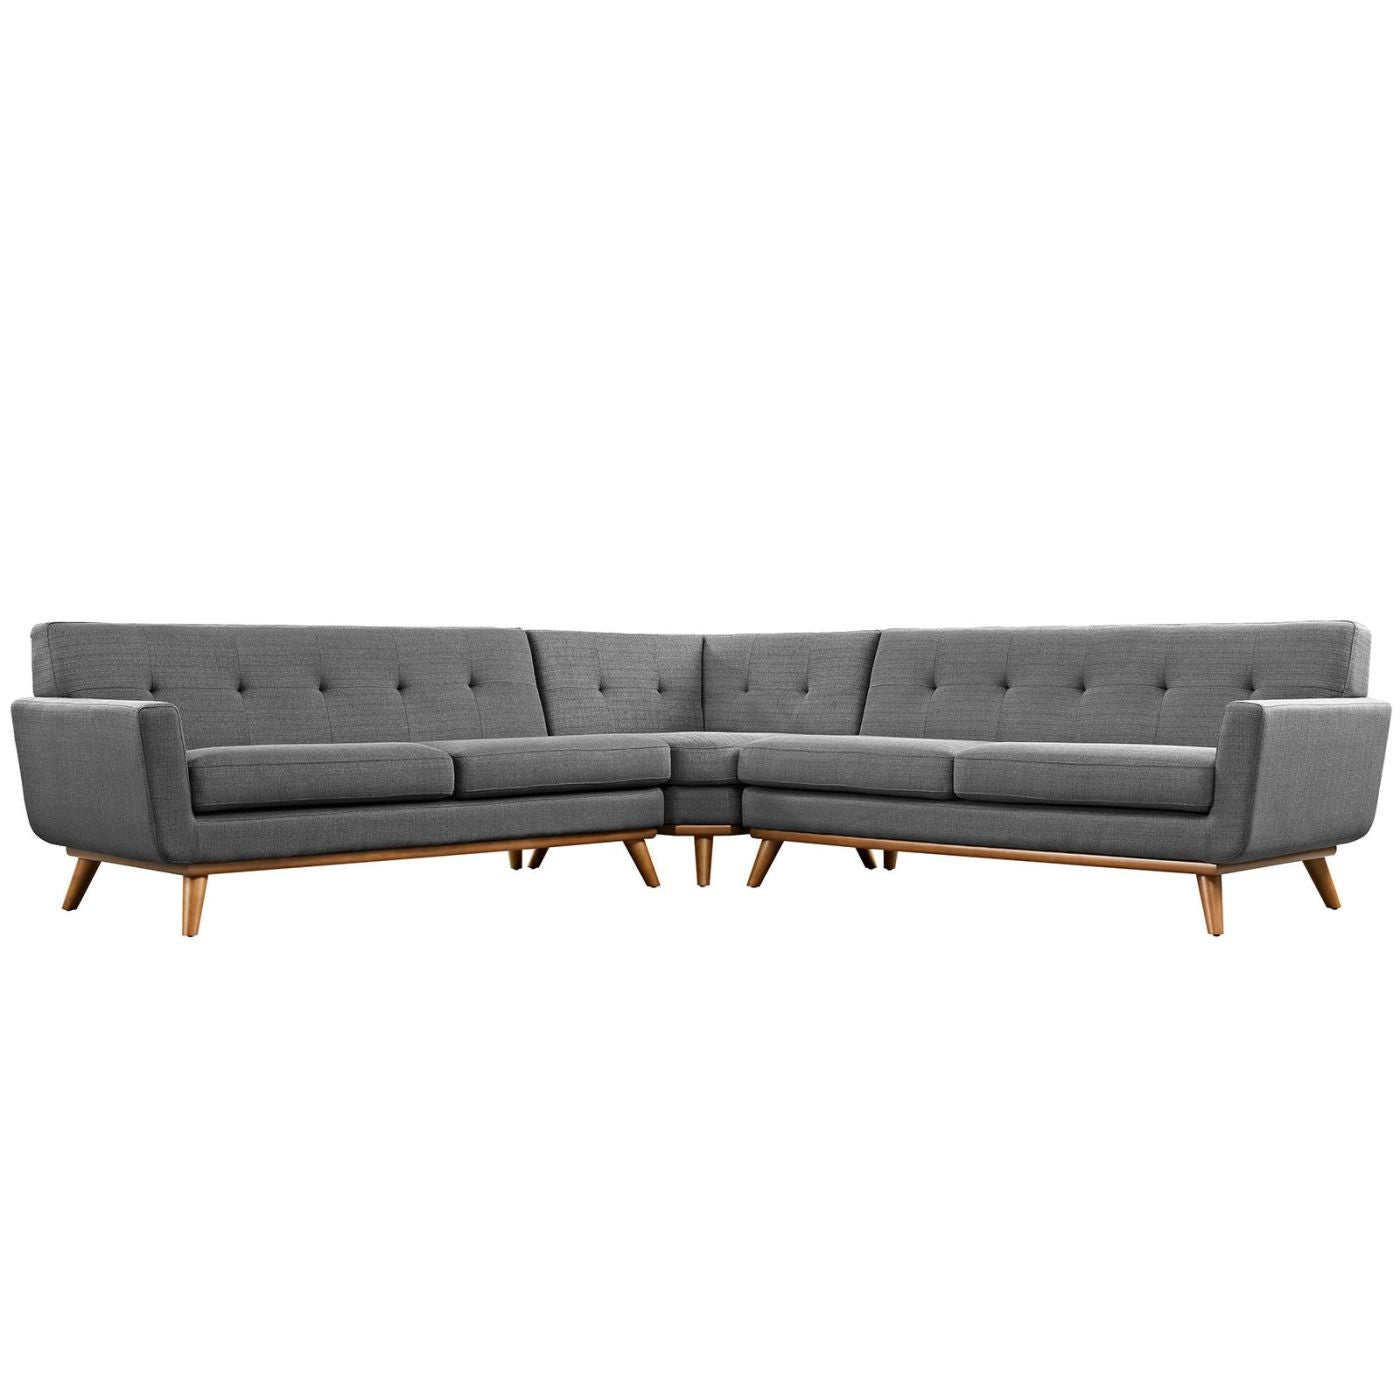 Buy Modway EEI-2108-DOR-SET Engage Mid Century Modern L-Shaped Sectional  Sofa at Contemporary Furniture Warehouse